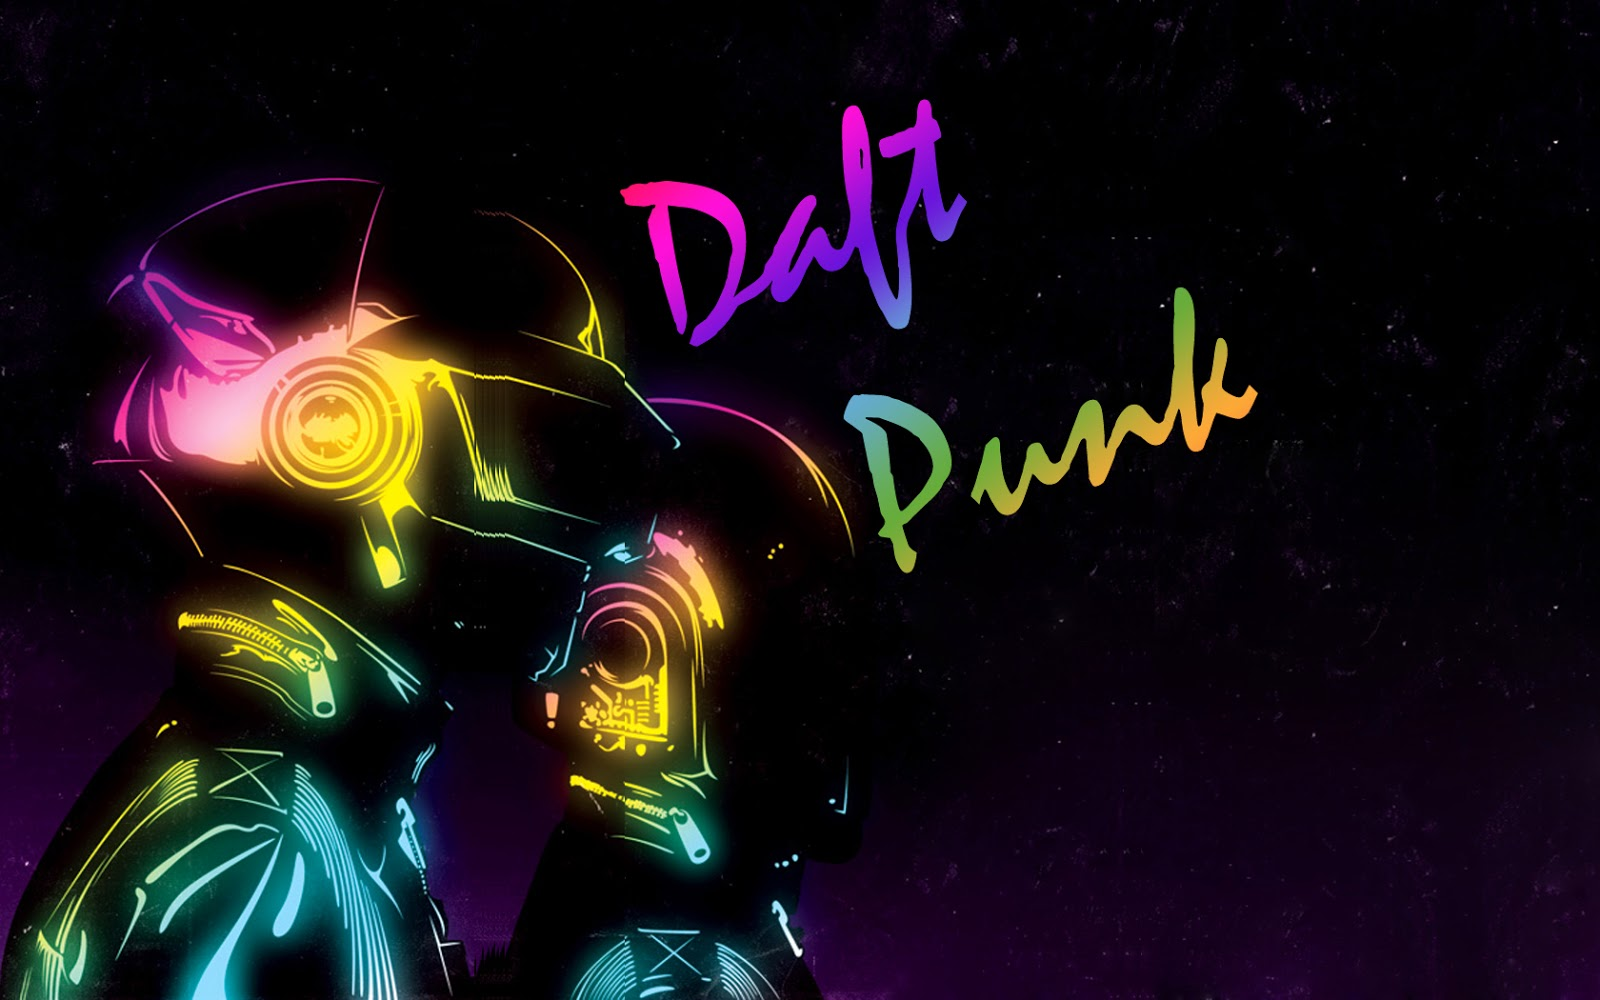 Daft Punk Wallpapers - WallpaperSafari